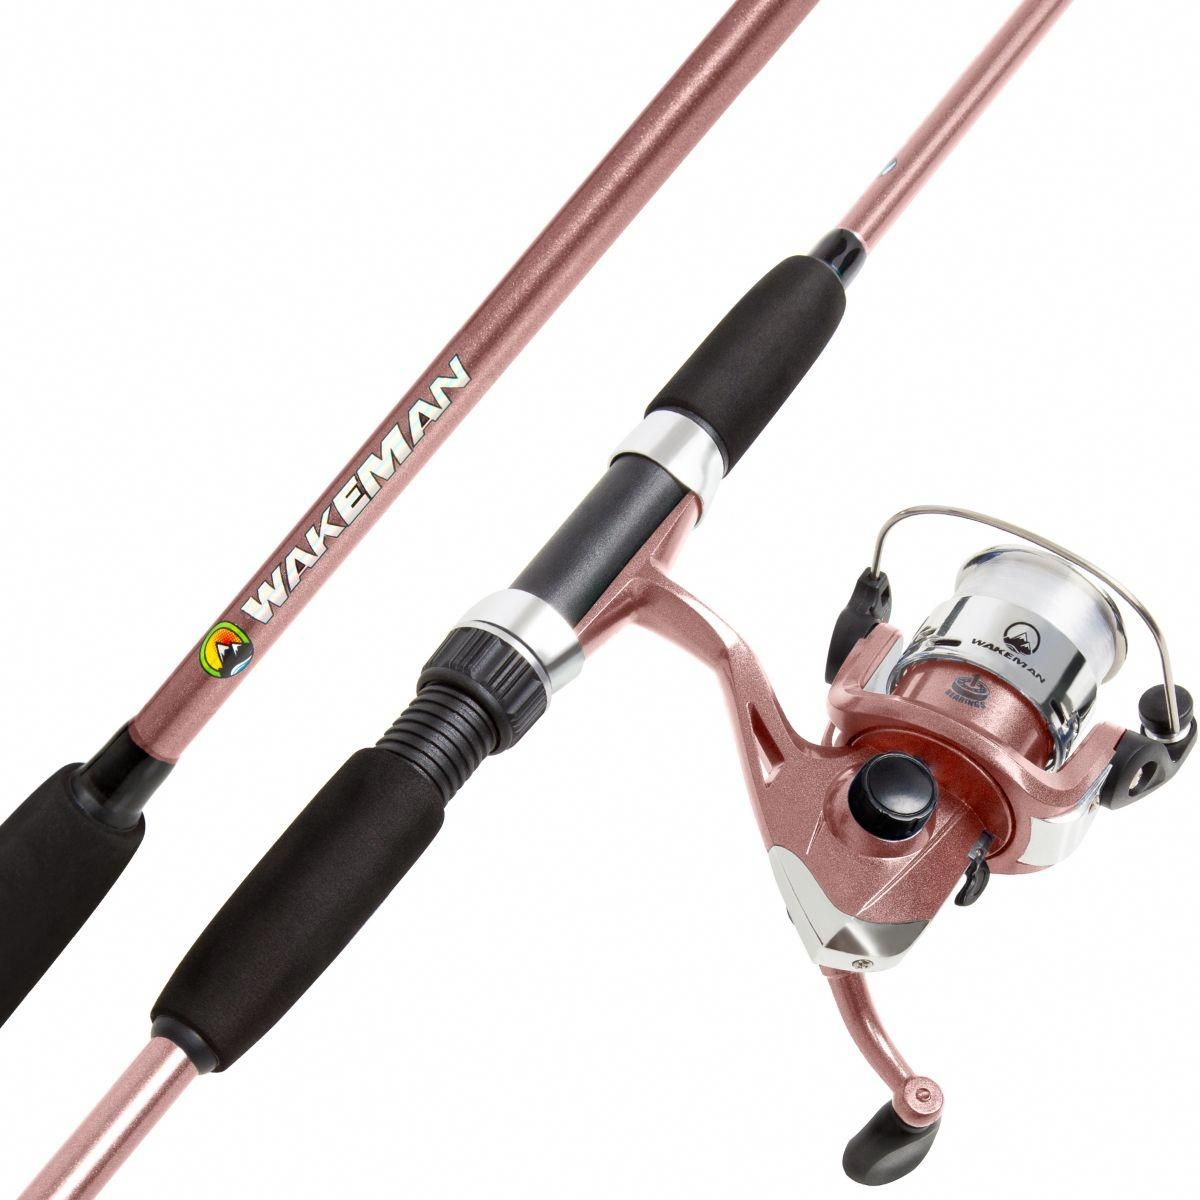 Pin By Olga Fishing Pins On Juan In 2020 Fishing Rods And Reels Rod And Reel Fishing Gear